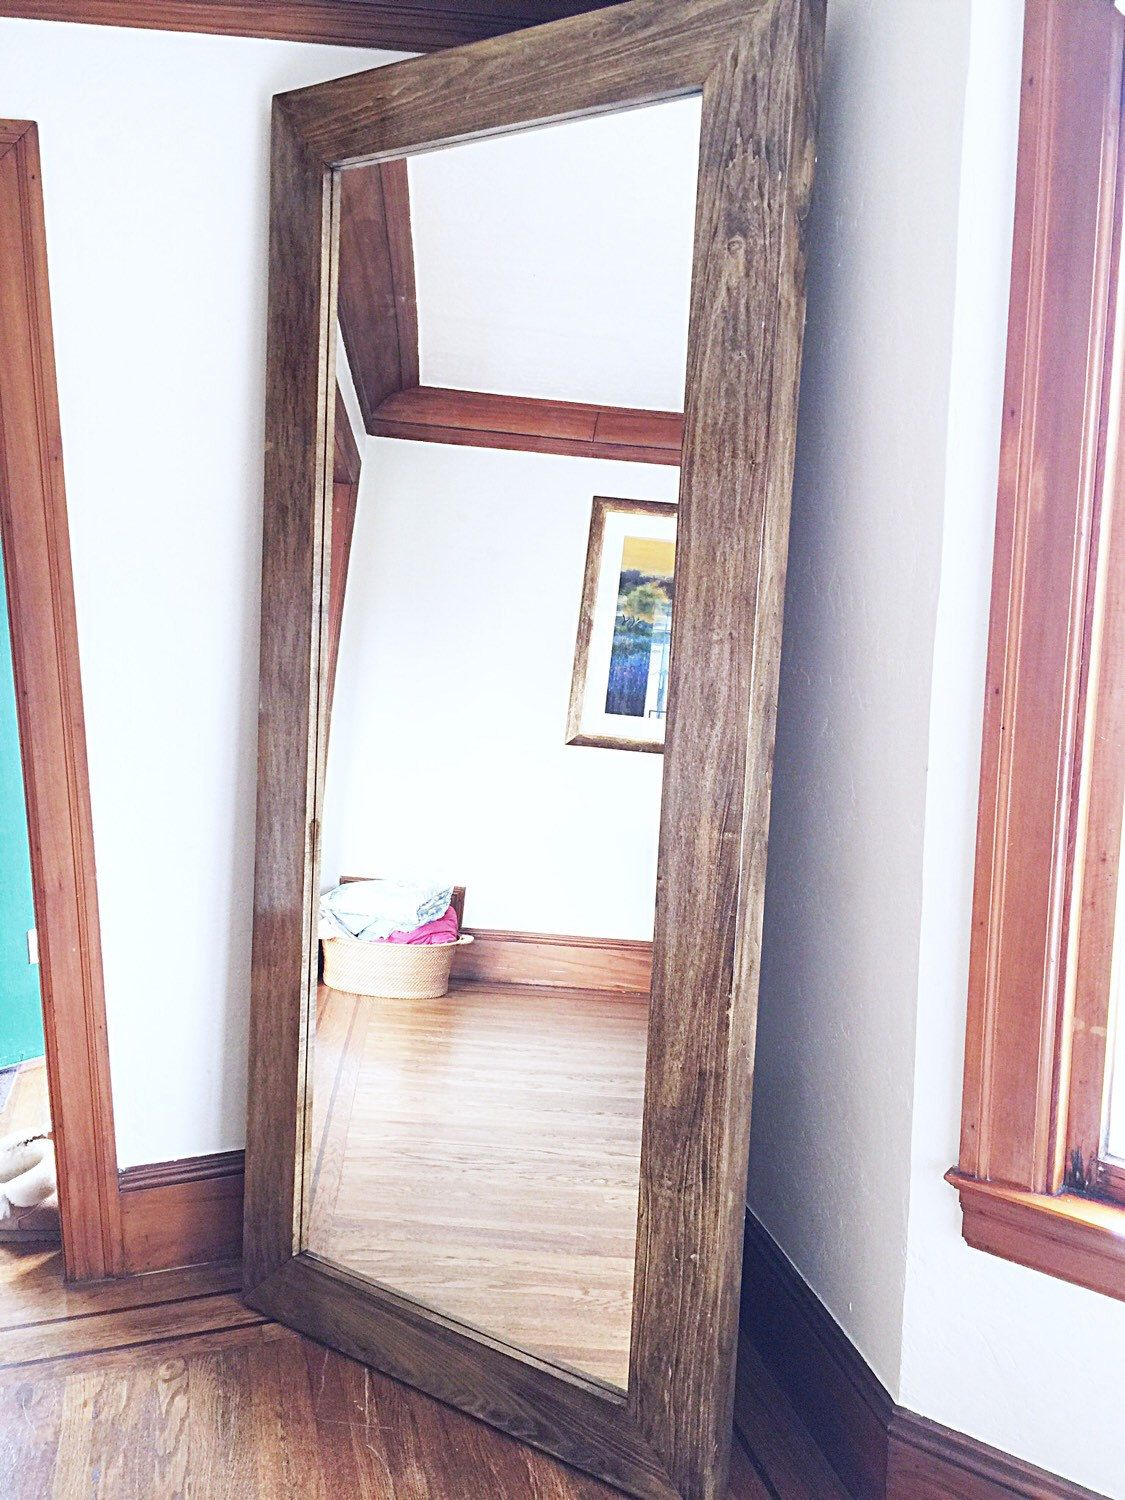 Large Bedroom Mirrors Omni Beveled Mirrored Frame Rectangular Floor Mirror By Inspire Q